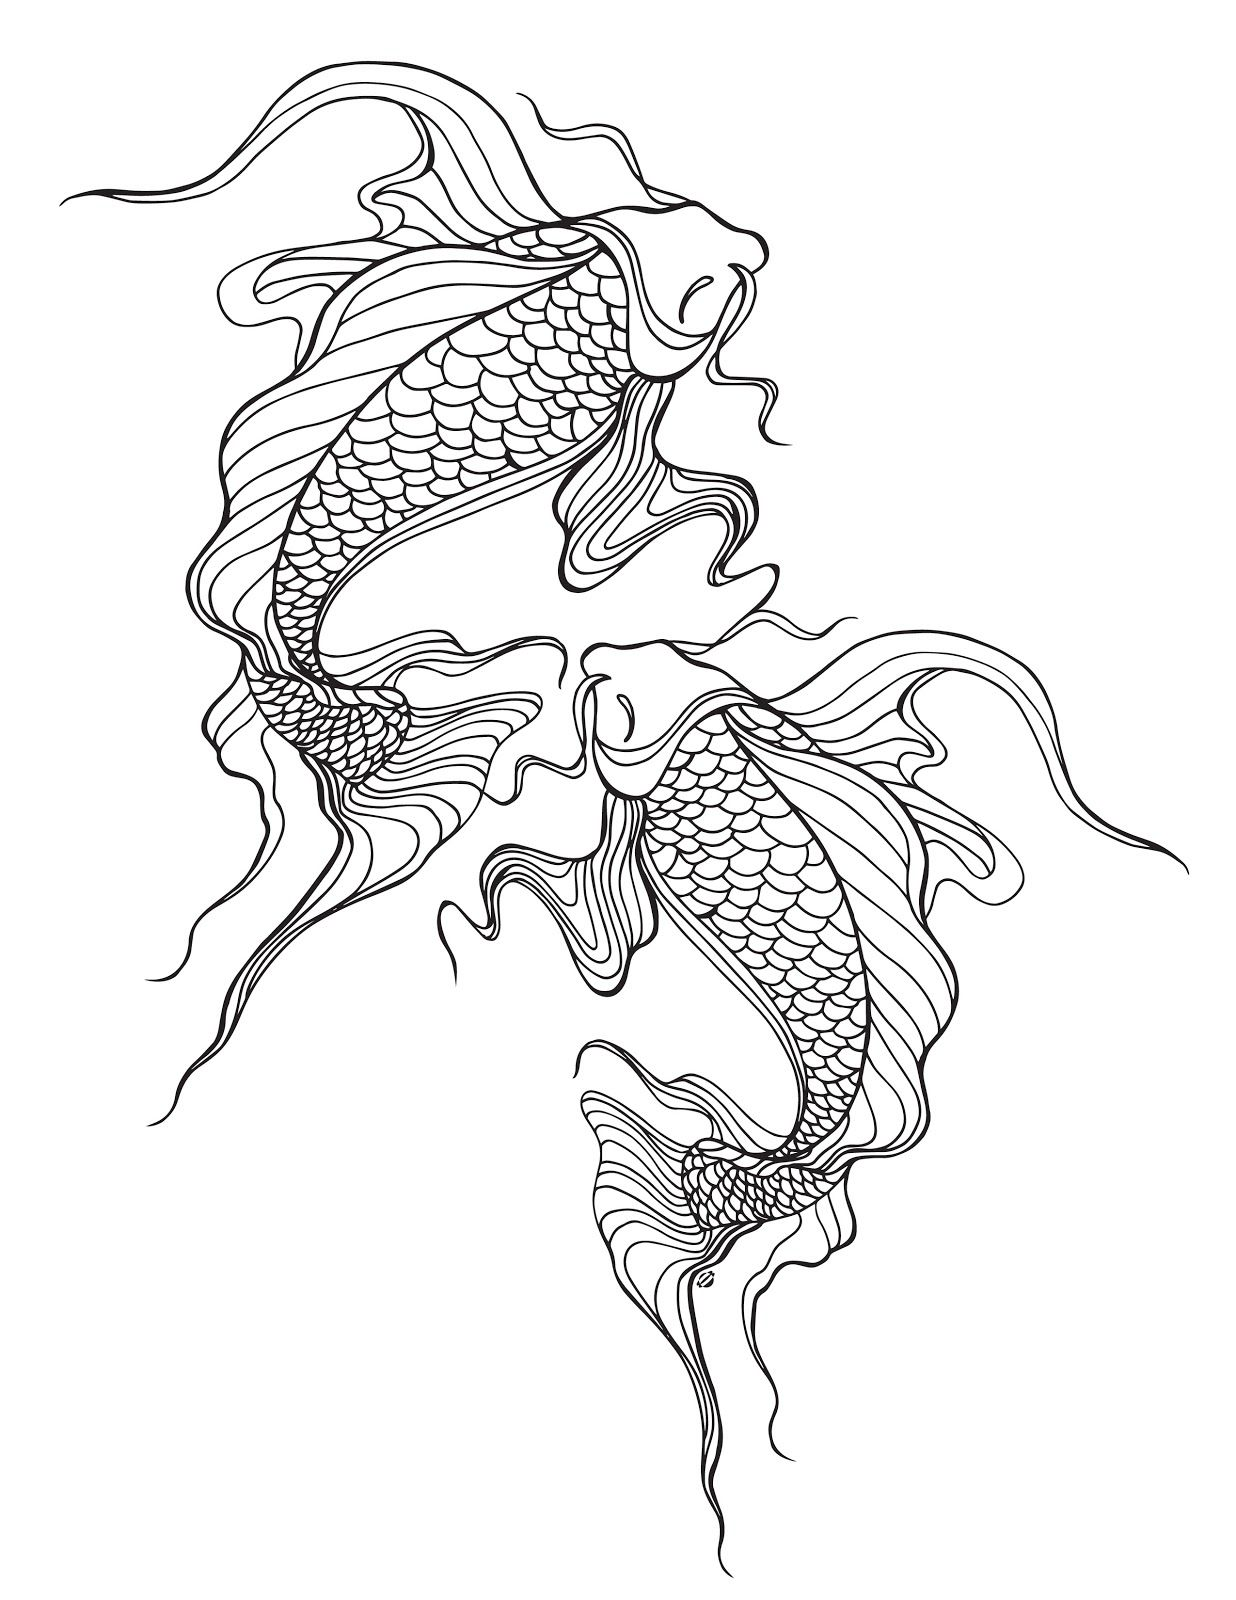 Lostbumblebee Mdbn Grown Up Colouring Coloring Sheets Koi Fish Free Donate To